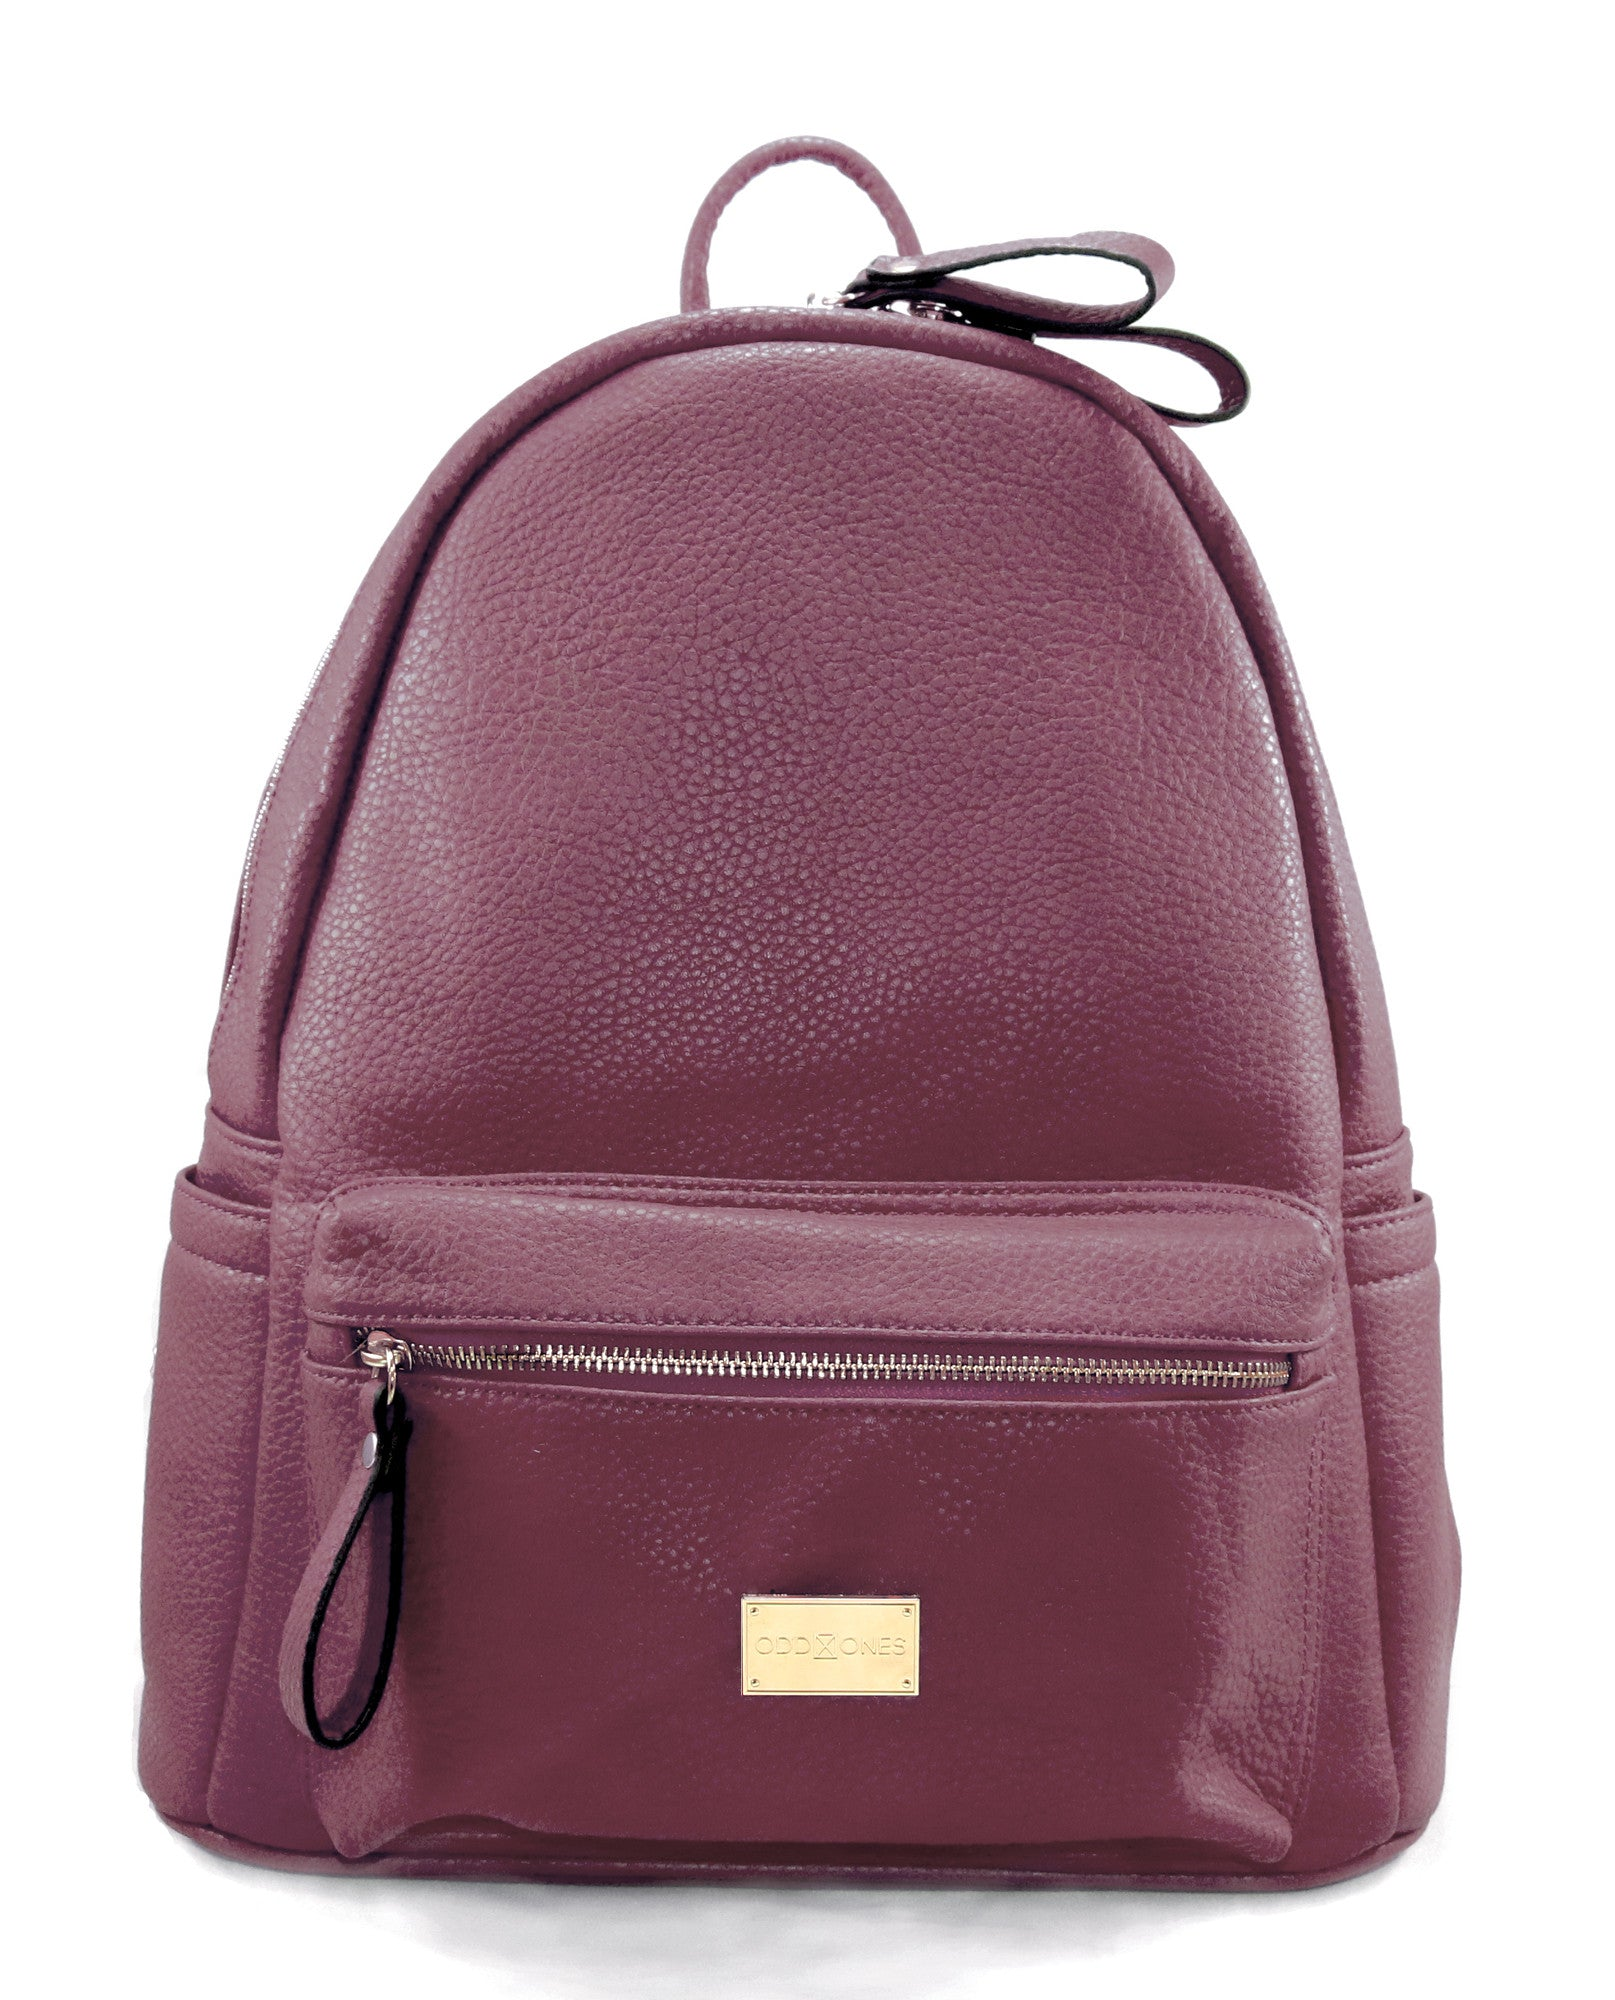 Knightsbridge Purple Backpack